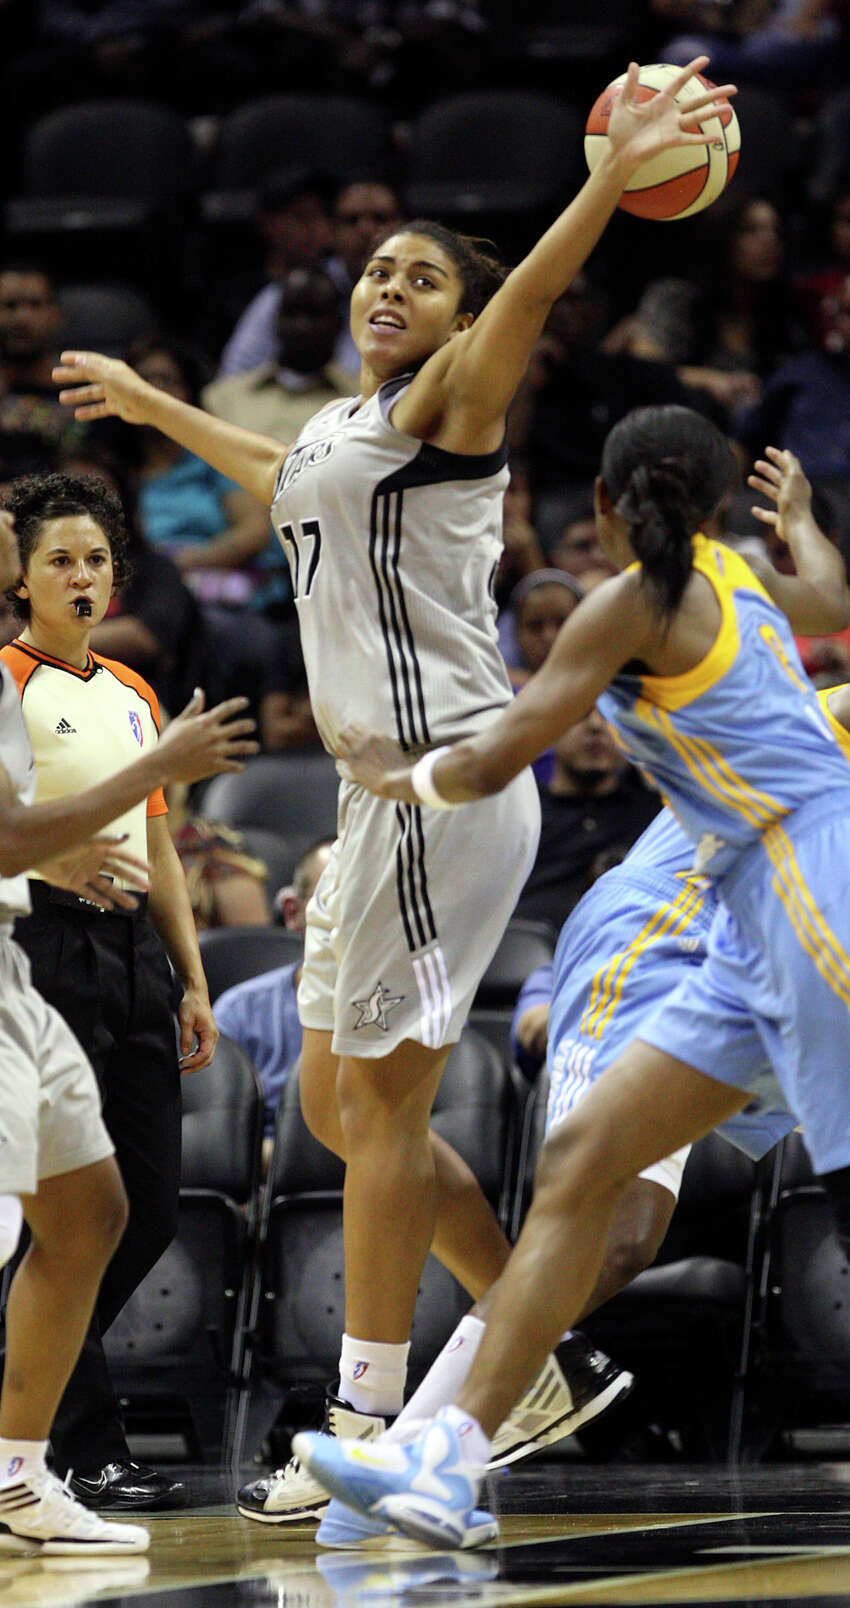 San Antonio Silver Stars' Ziomara Morrison reaches for a rebound against the Chicago Sky during the first half at the AT&T Center, Wednesday, May 30, 2012. It is the season opener for the Stars